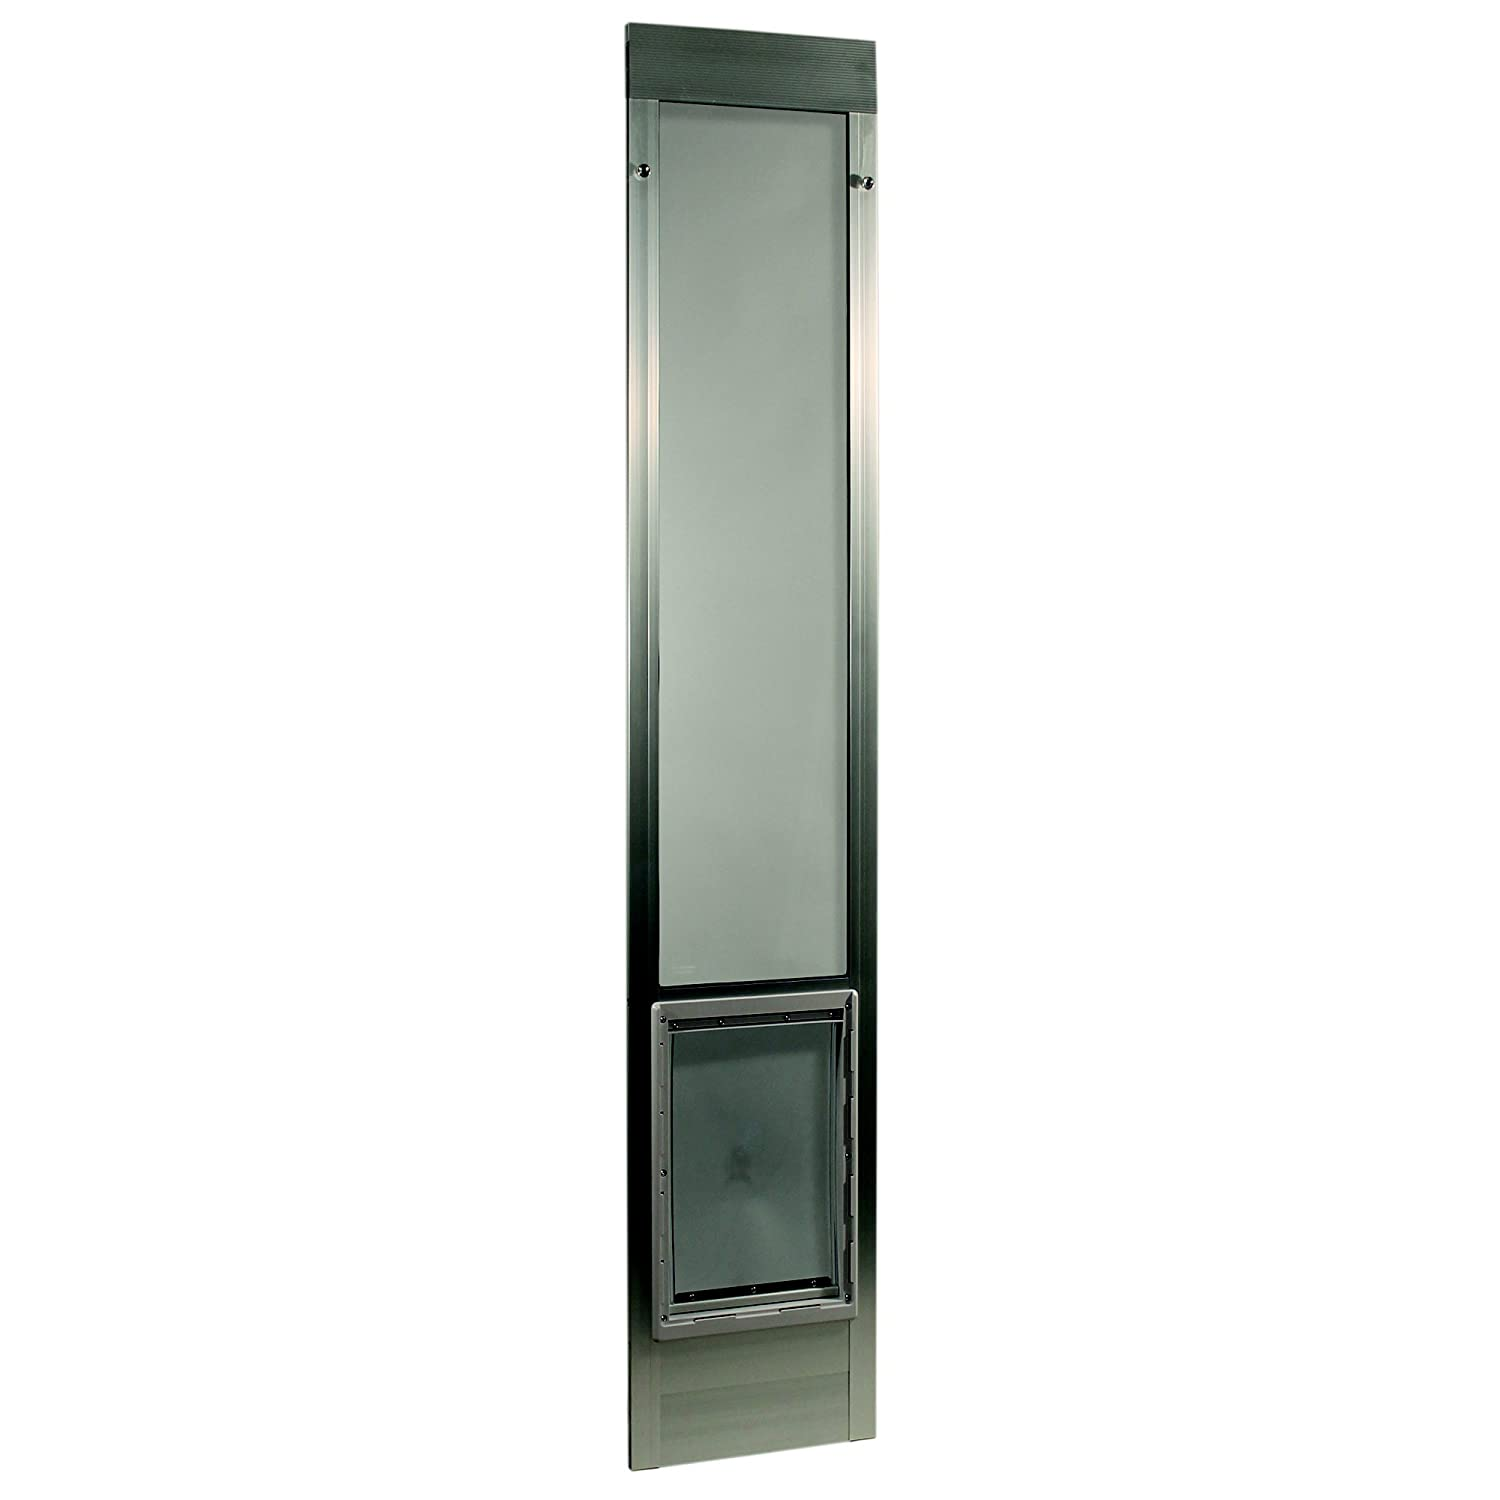 75  Fast Fit Pet Patio Door with Extra Large 10 1 2  x 15  Flap (Mill (aluminum))